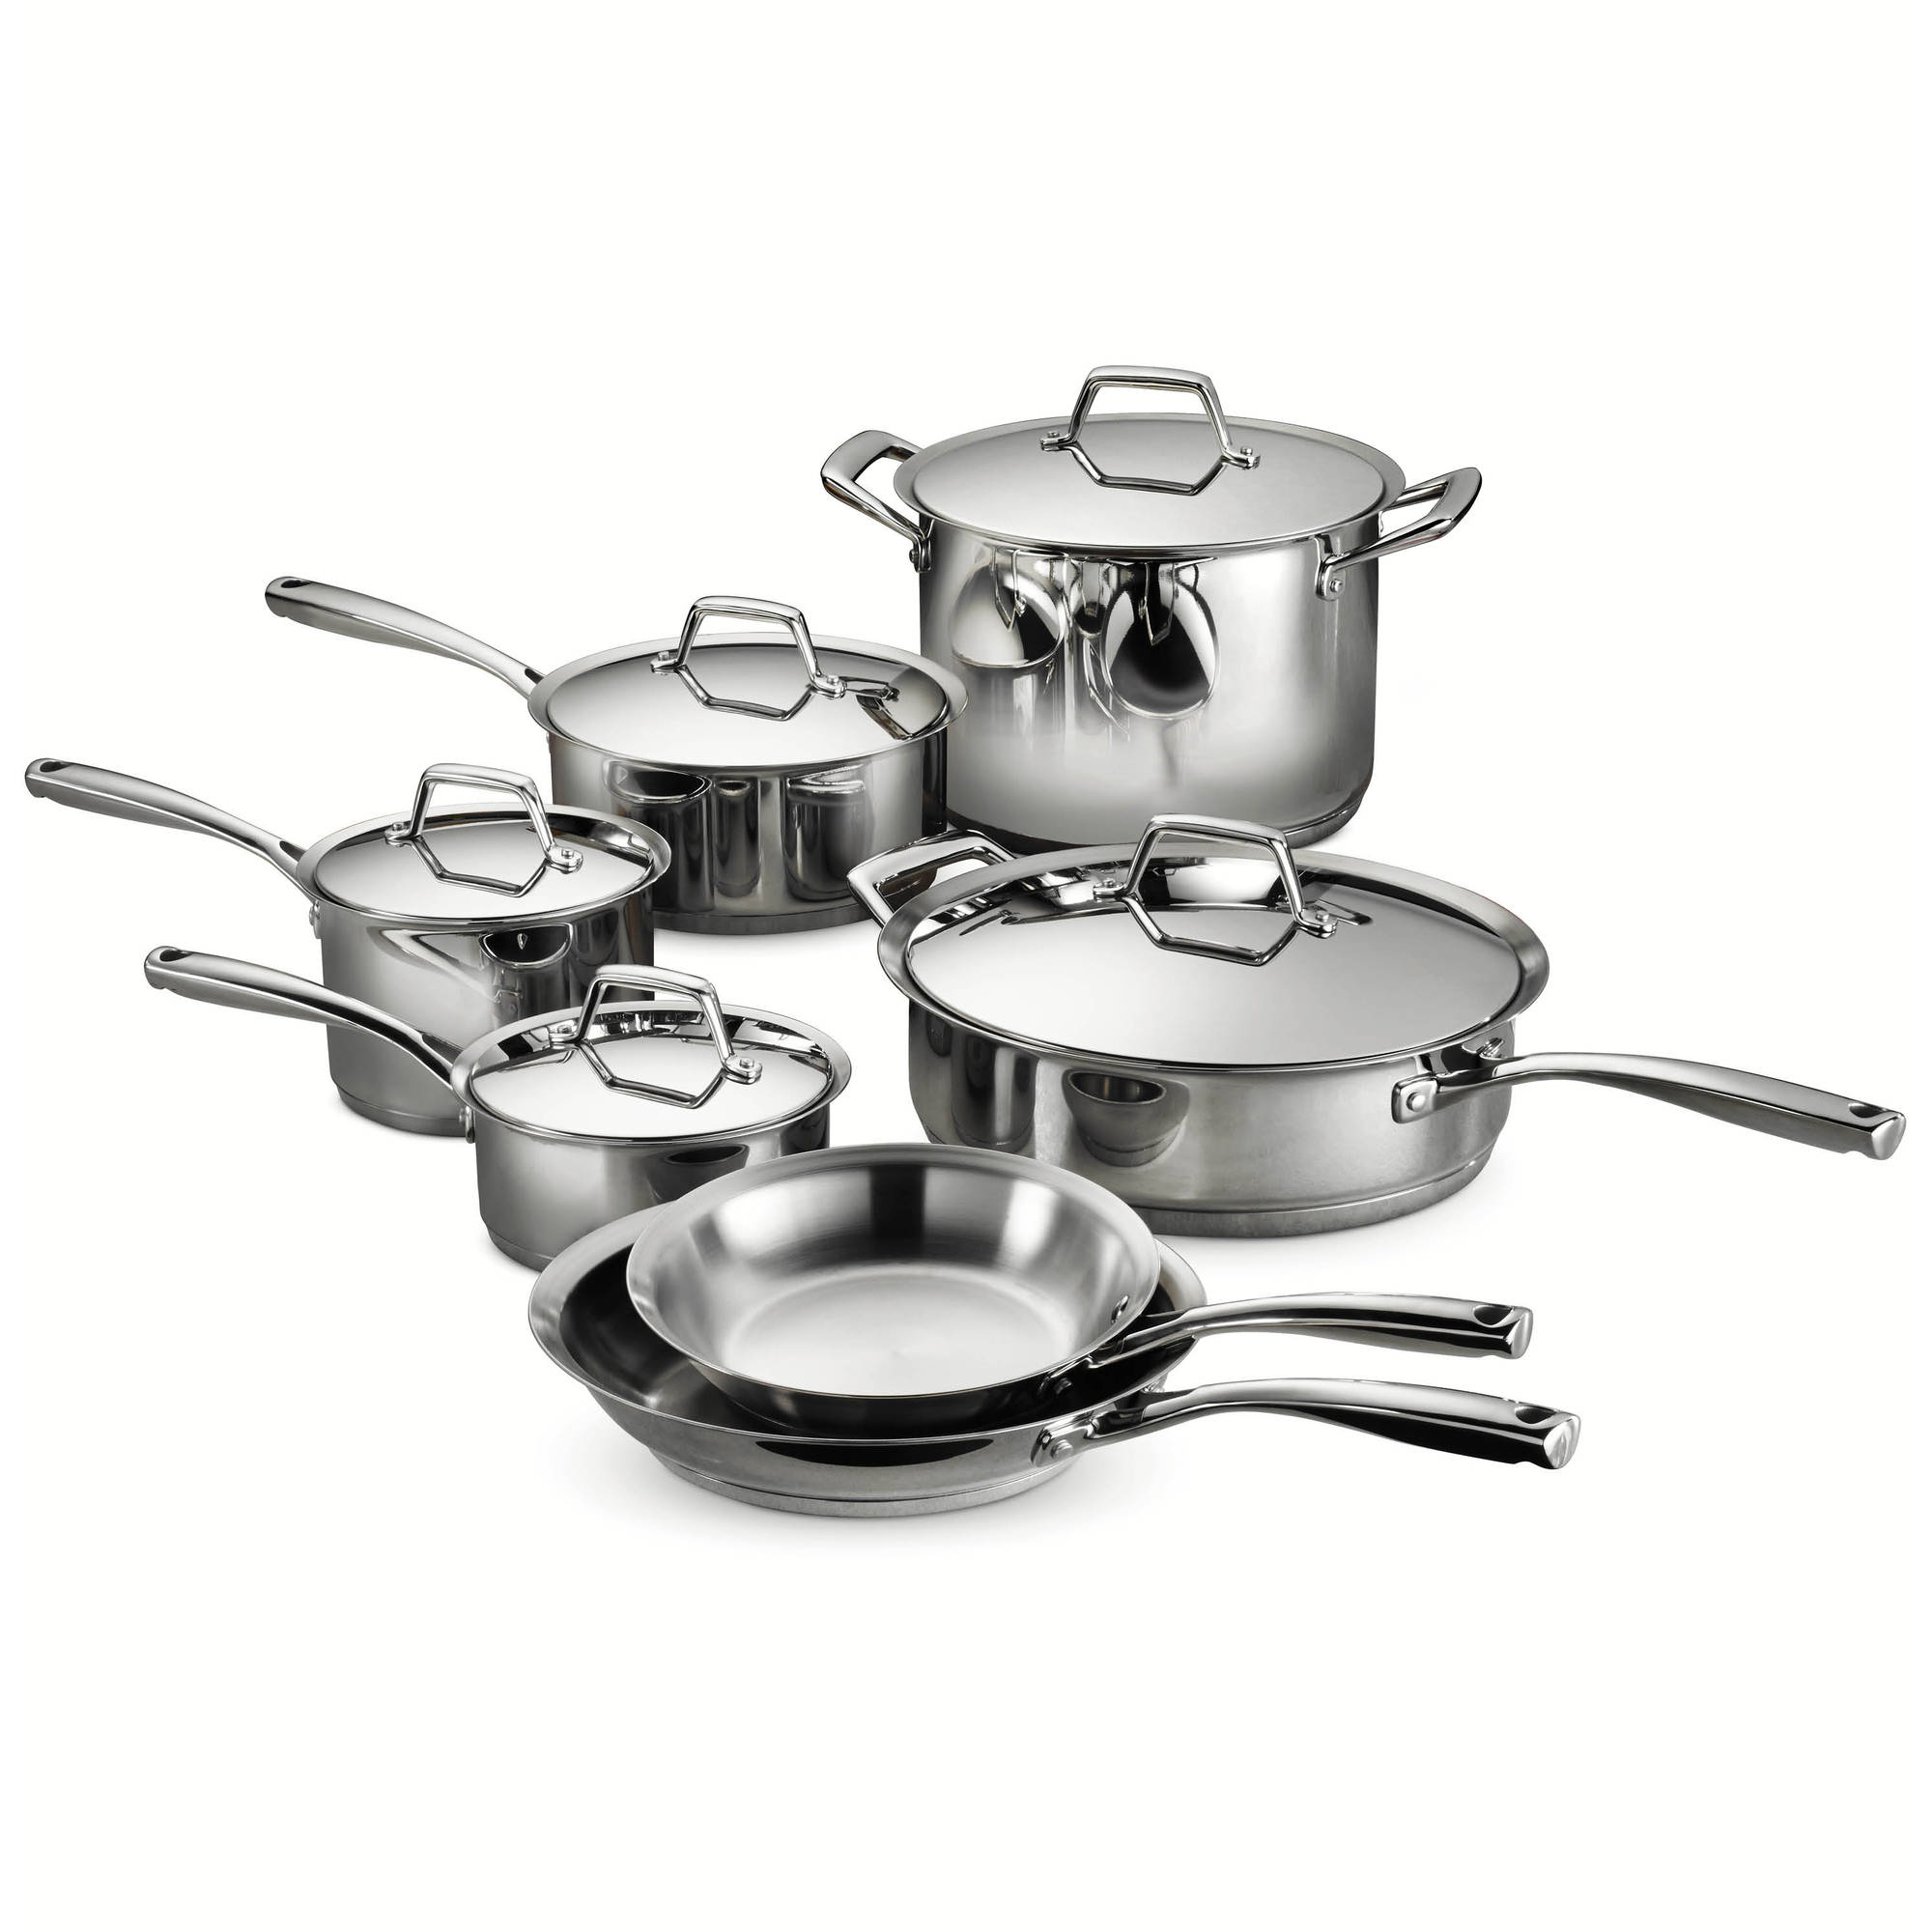 Tramontina Gourmet Prima 12-Piece Stainless Steel Cookware Set by Tramontina USA Inc.